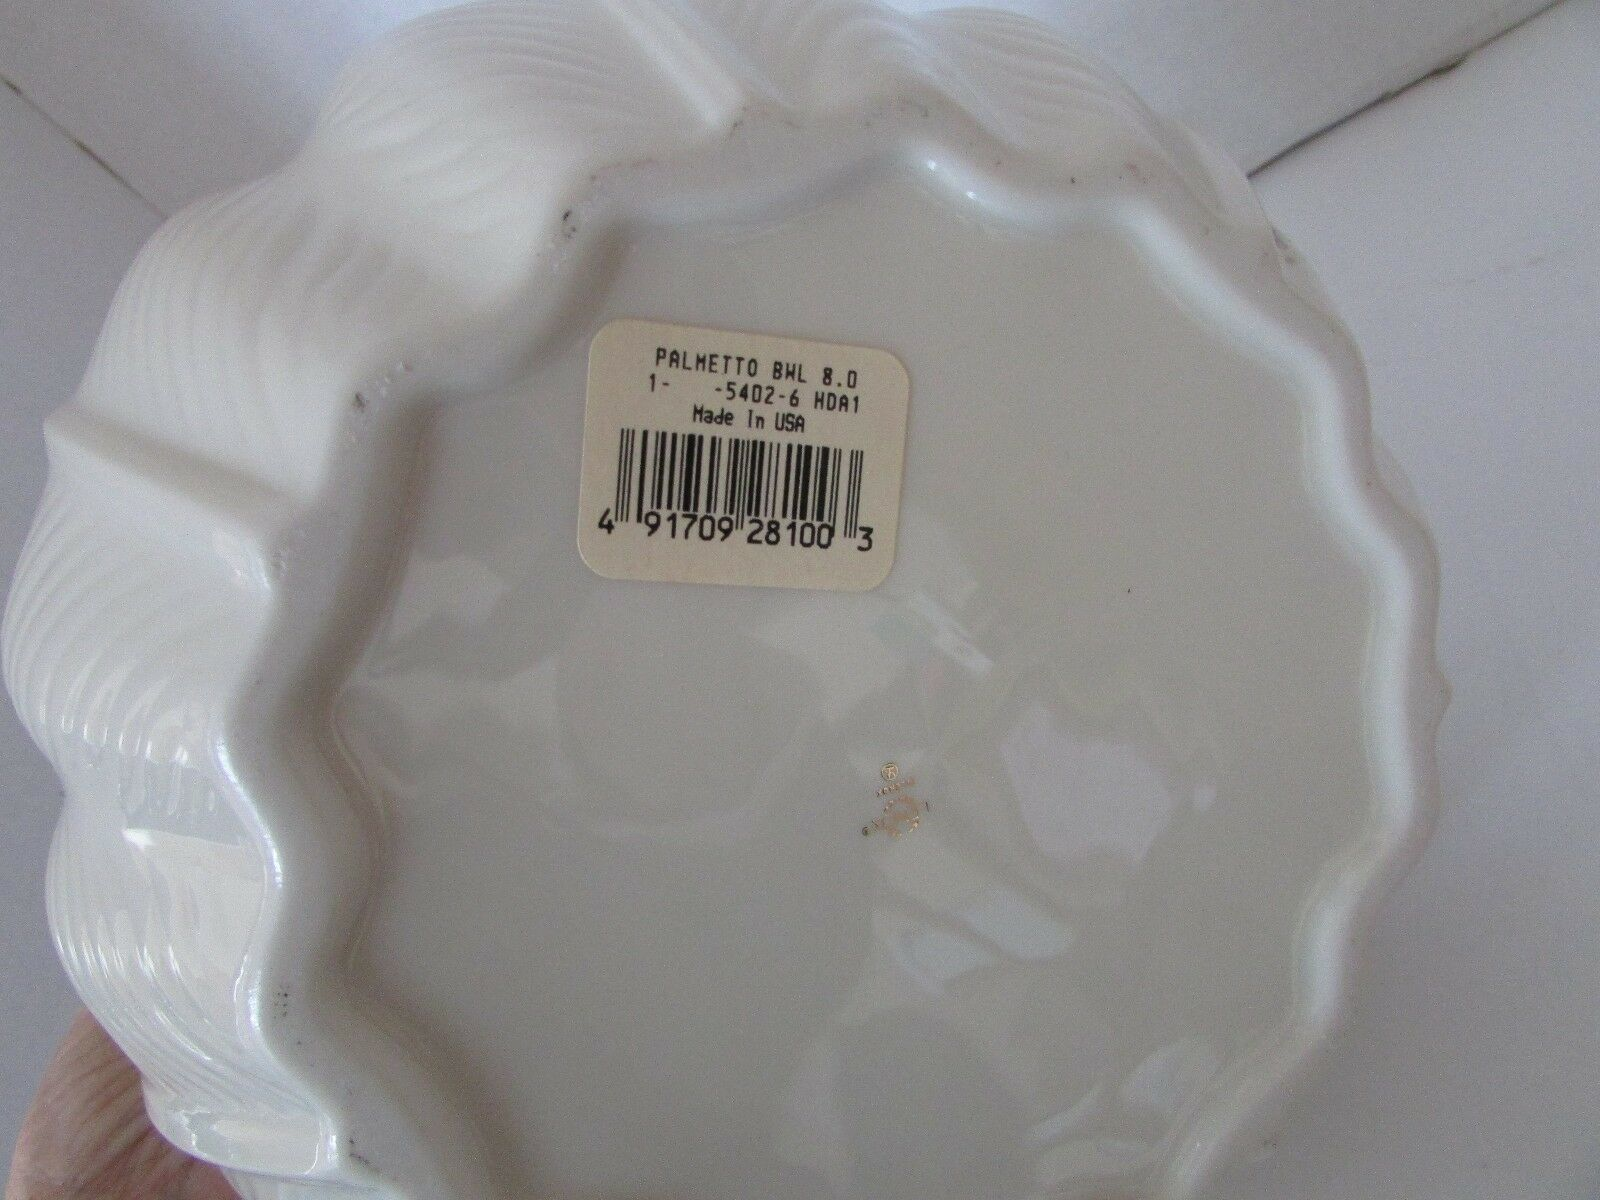 "LENOX PALMETTO BOWL 8""W WITH STICKER VERY NICE LEAF PATTERN MADE IN USA 5-3/4""H"